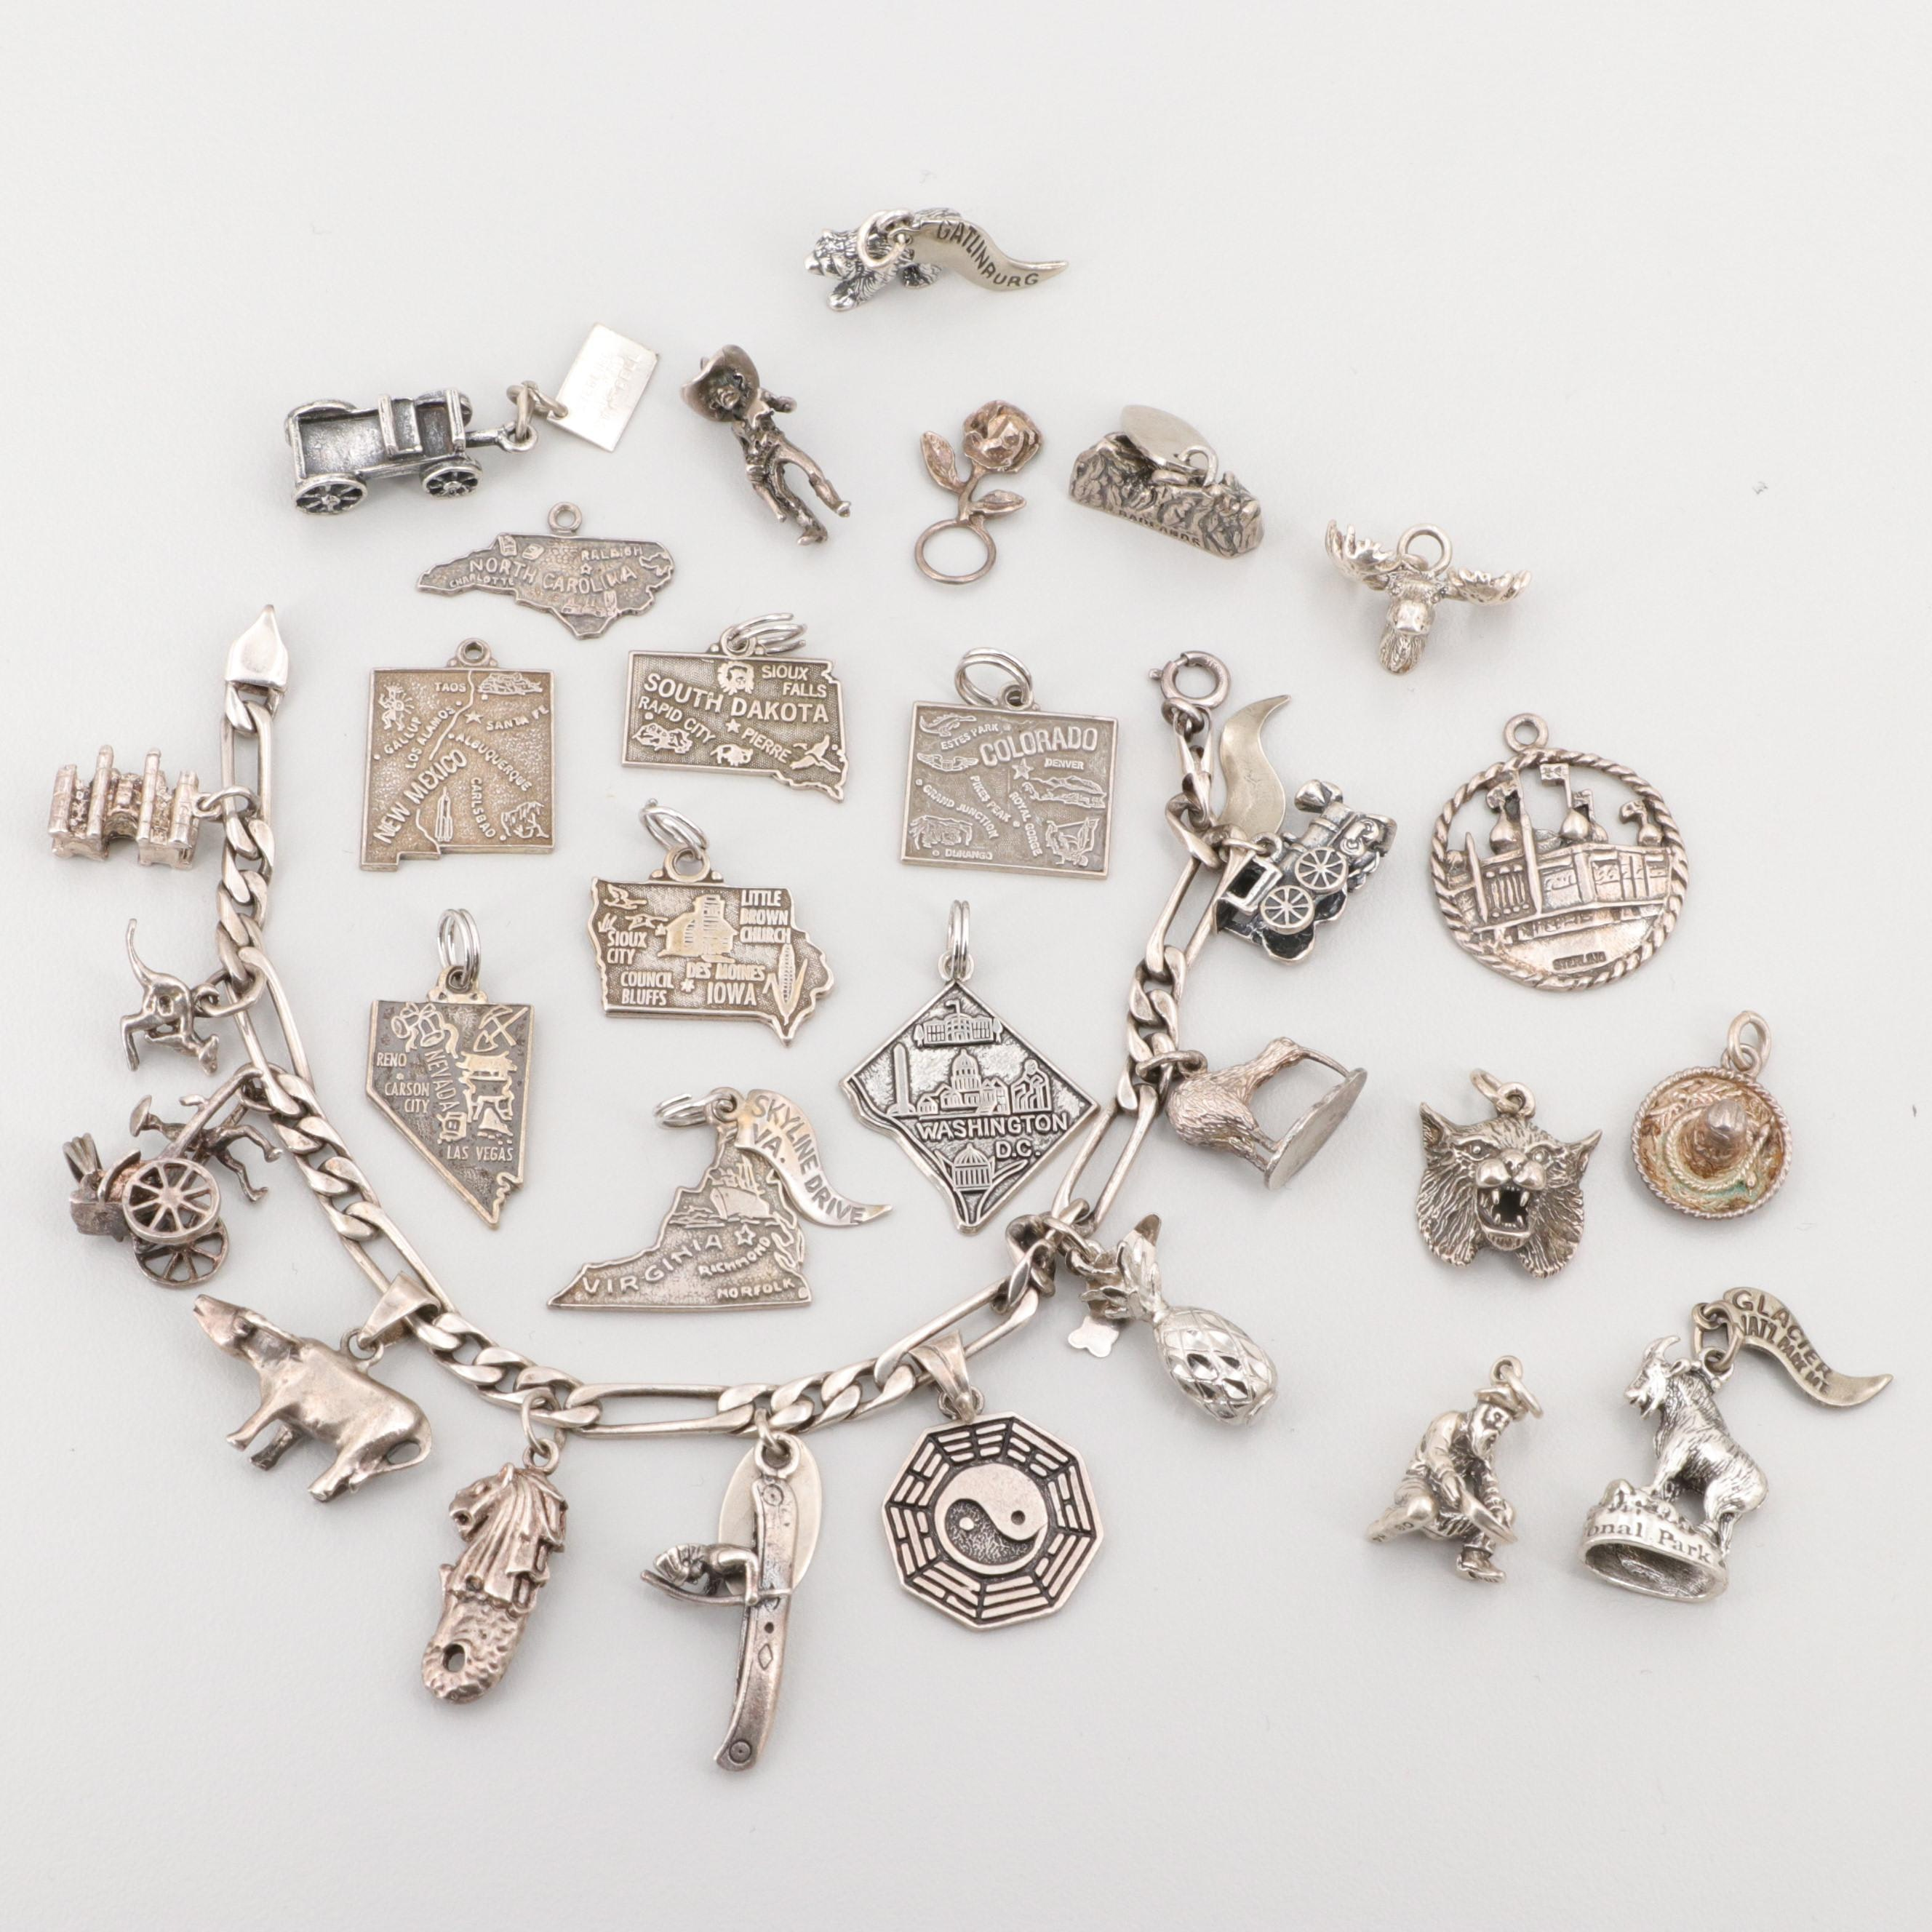 Sterling Silver Charm Bracelet and Loose Charms